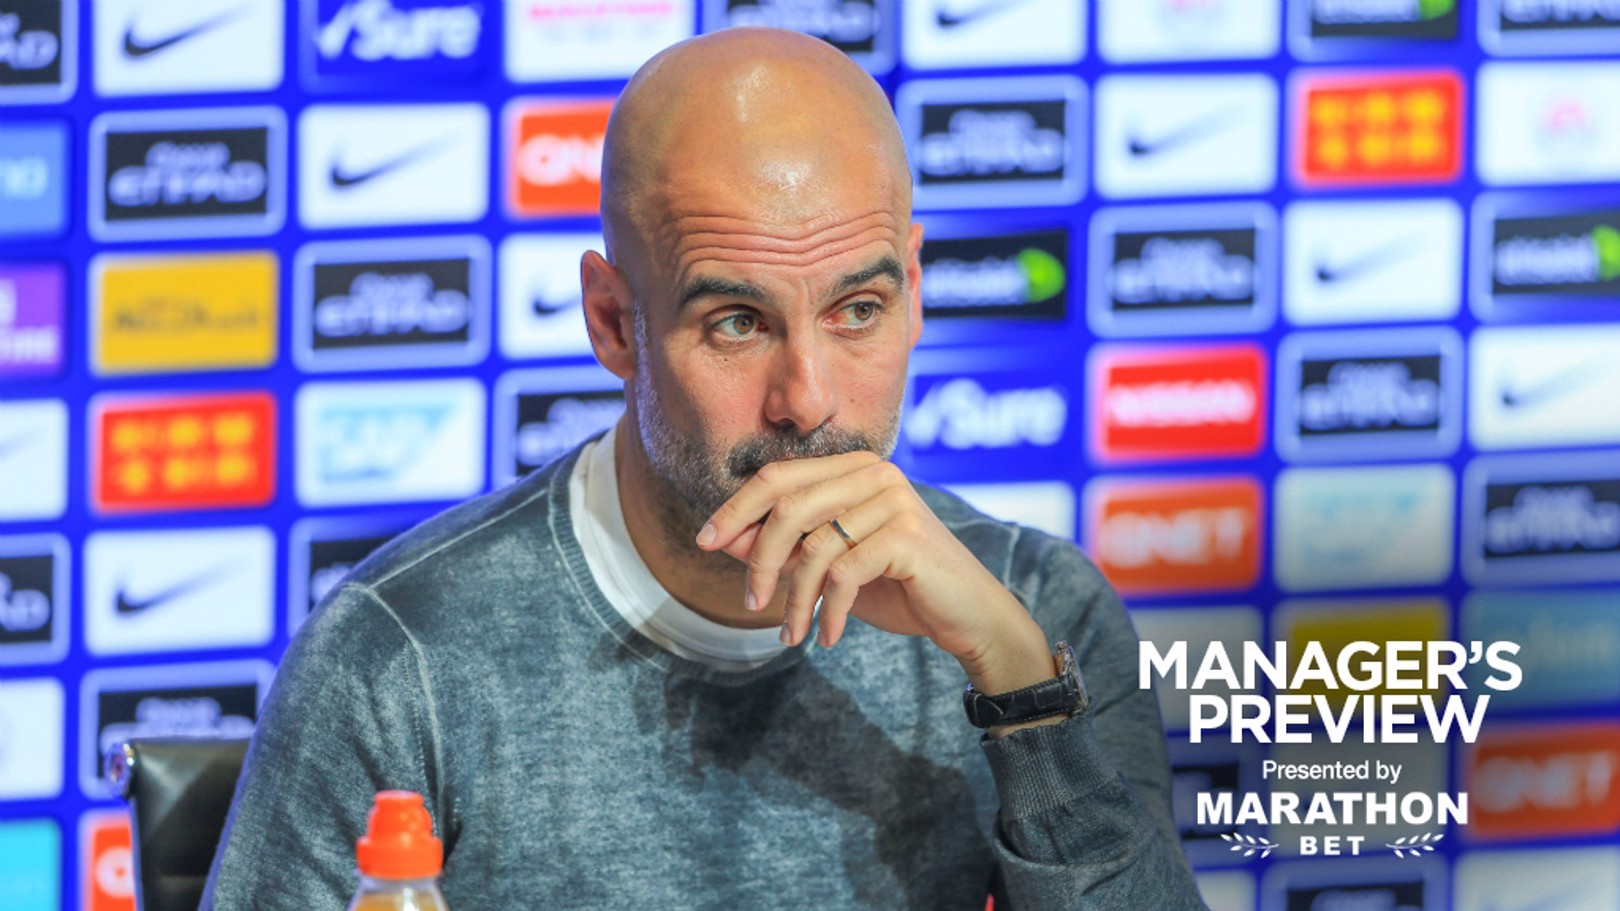 PRE-MATCH: Pep Guardiola addresses the media ahead of the final game of the season.